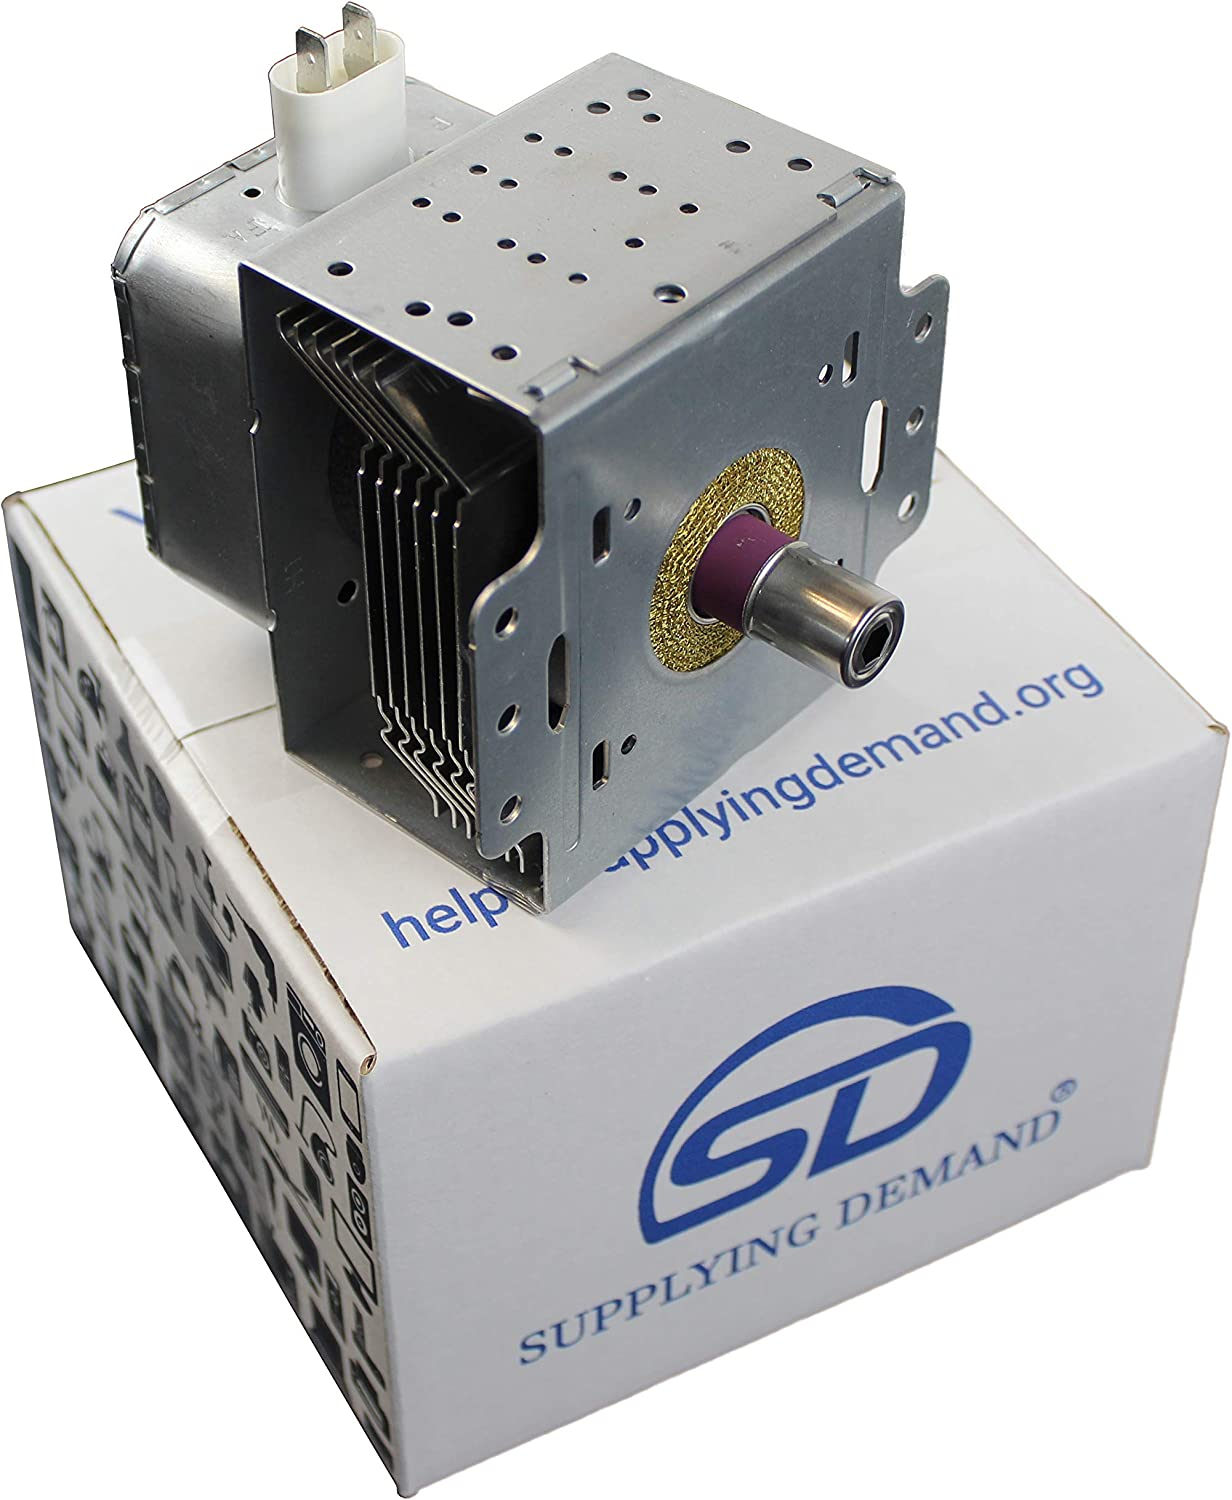 Supplying Demand 6324W1A001L 5304464072 Microwave Magnetron Replaces 5304472445 Compatible with Frigidaire